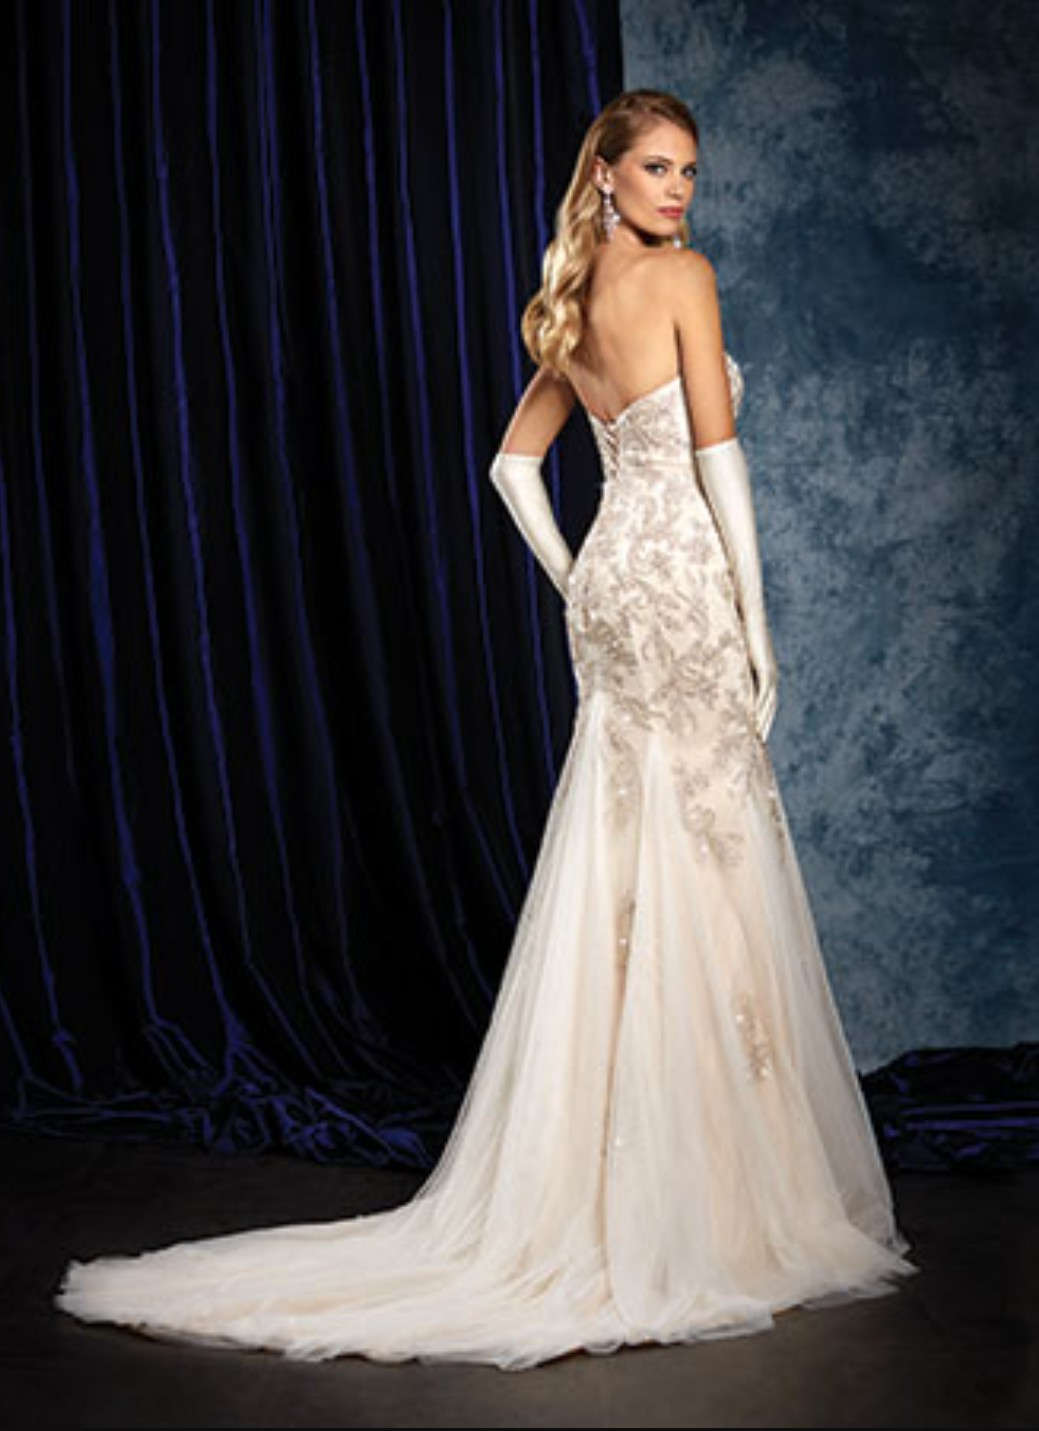 Alfred Angelo Wedding Dresses Reviews : Alfred angelo style wedding dress on sale off